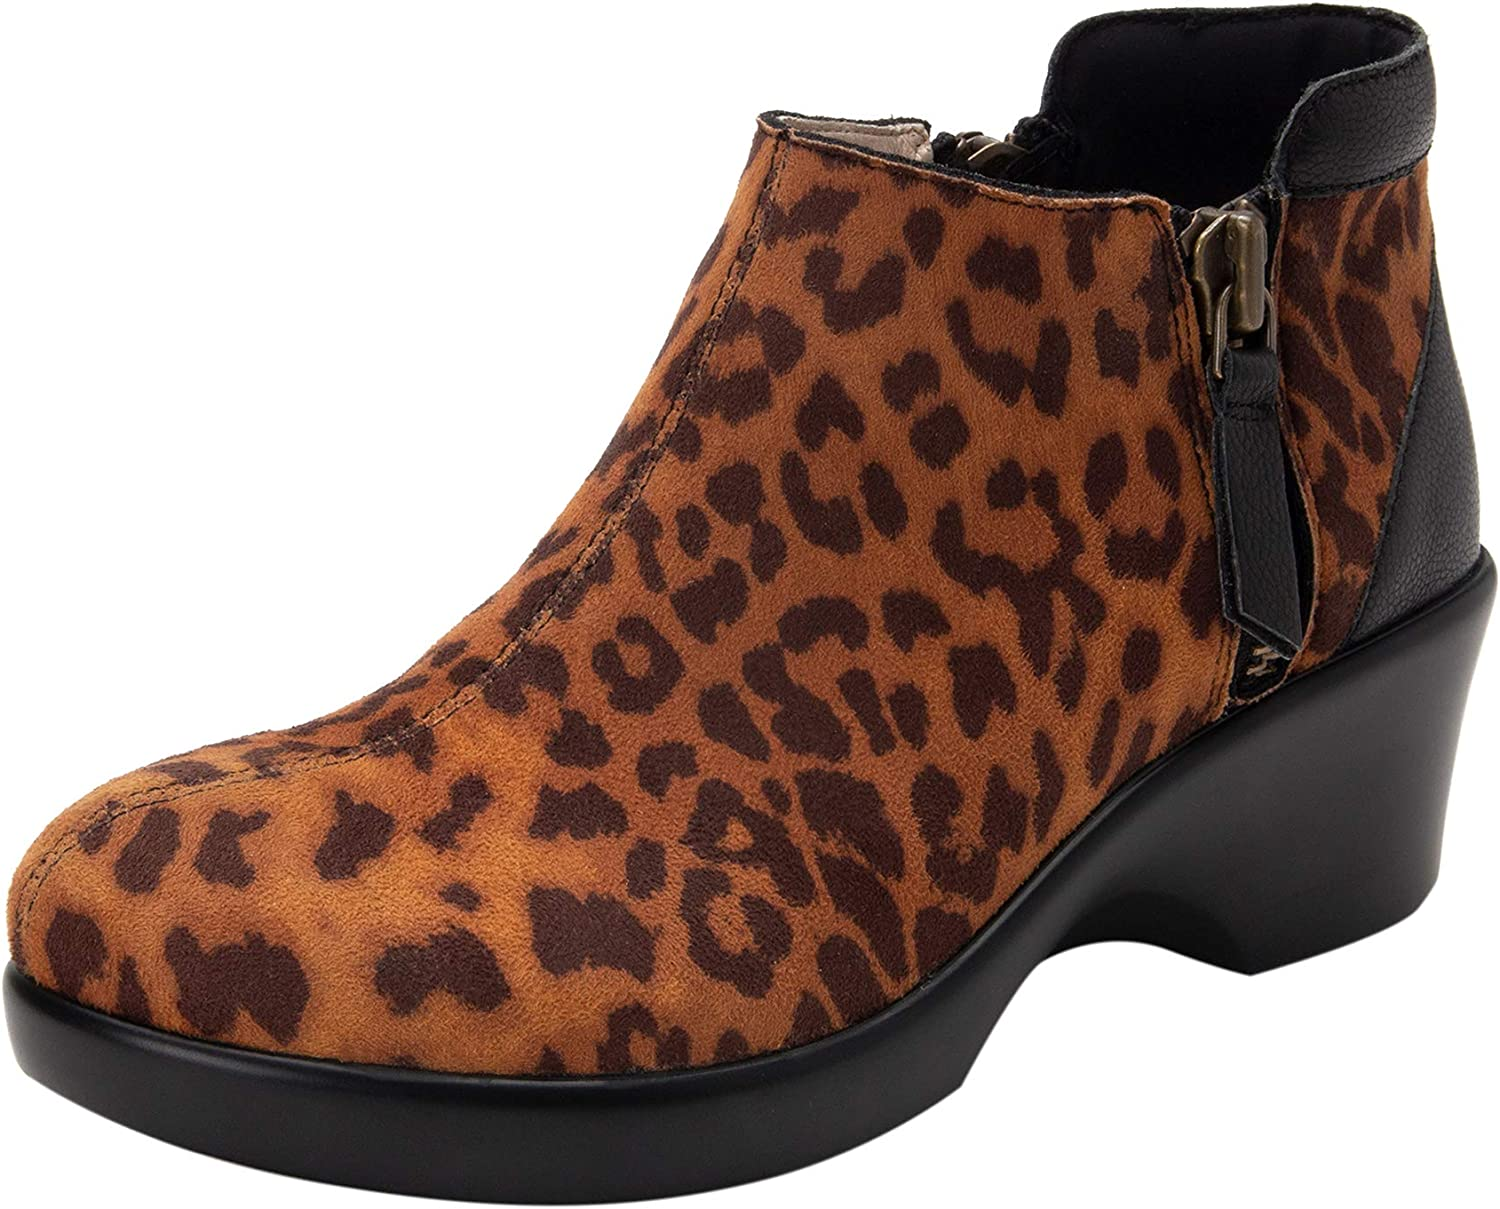 Cheap Product mail order specialty store Alegria Sloan Womens Wedge Fashion Career